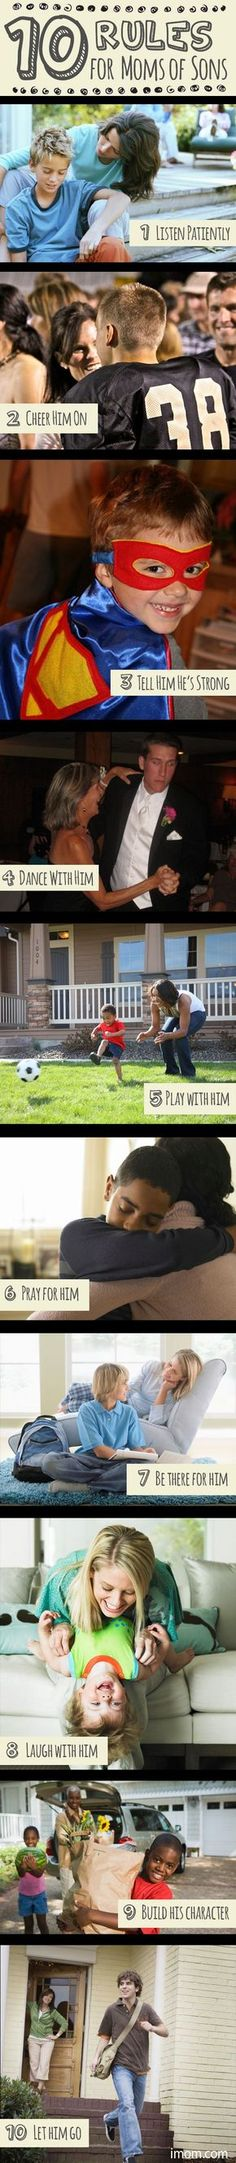 We can get so busy correcting our sons, and dealing with the daily needs of boys, that we miss doing the things that really matter now, and that will make a big difference for them in the long run.  Thats why weve come up with 10 Rules for Moms of Sons.